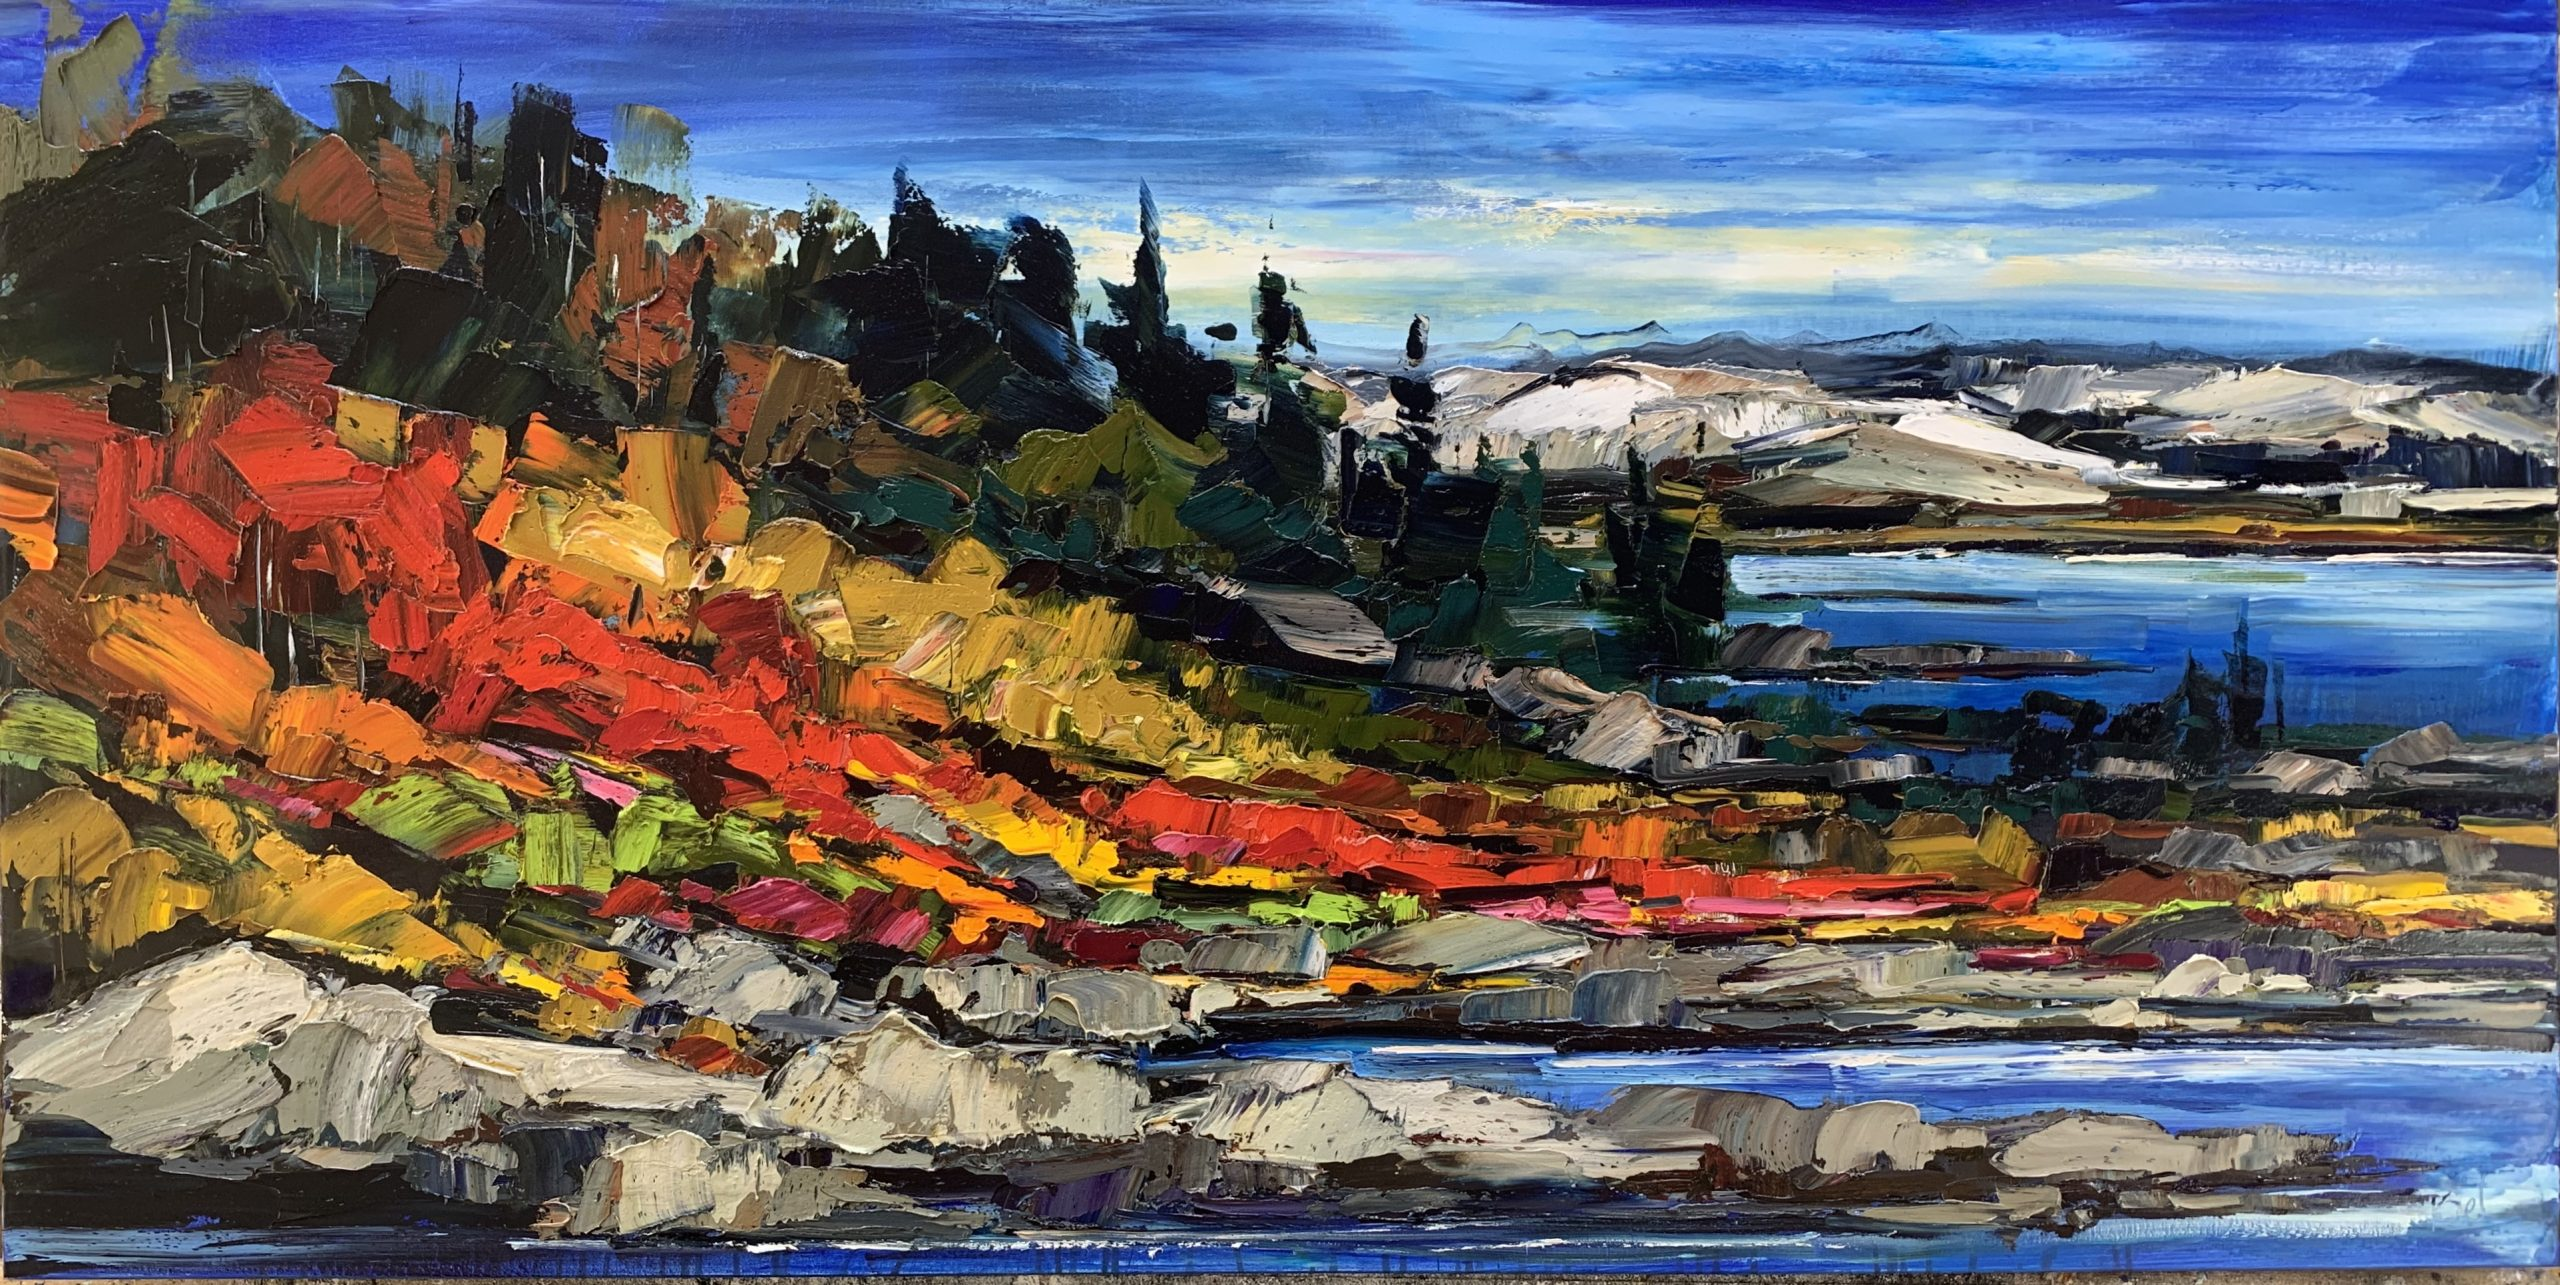 The Quiet Sound of Noticing, oil landscape painting by Kimberly Kiel | Effusion Art Gallery + Cast Glass Studio, Invermere BC